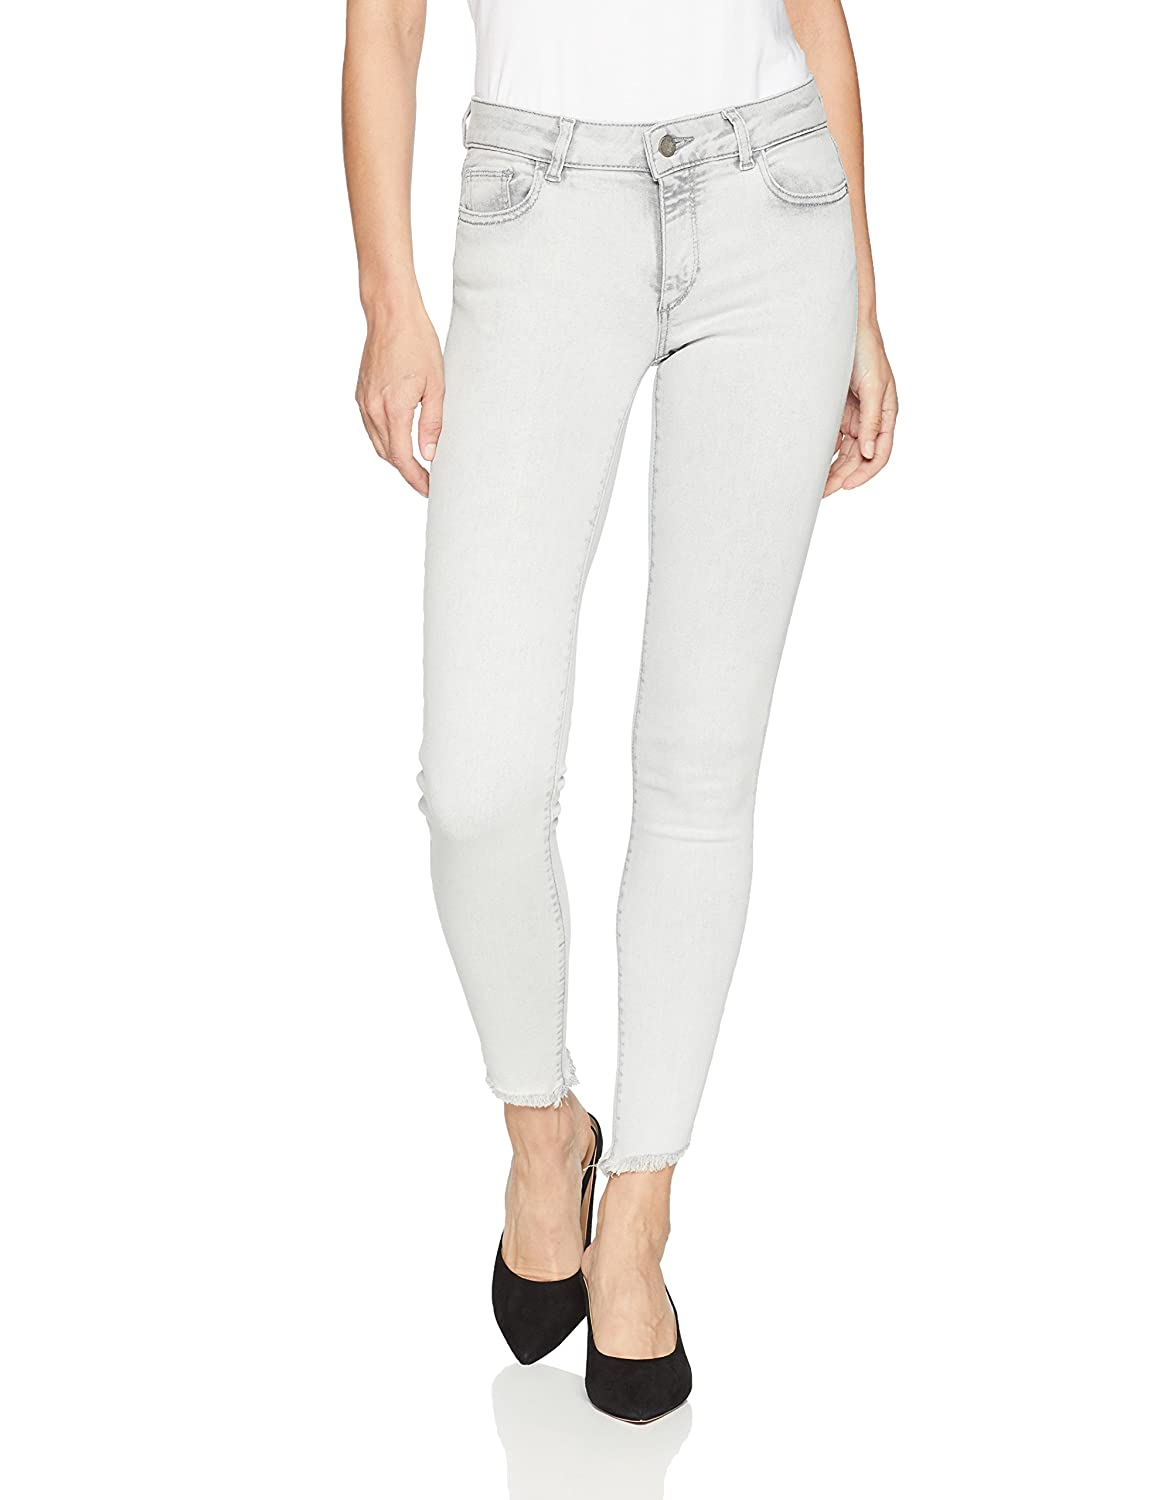 DL1961 Women's Emma Power Legging Jeans DL1961 Women's Collection 2815